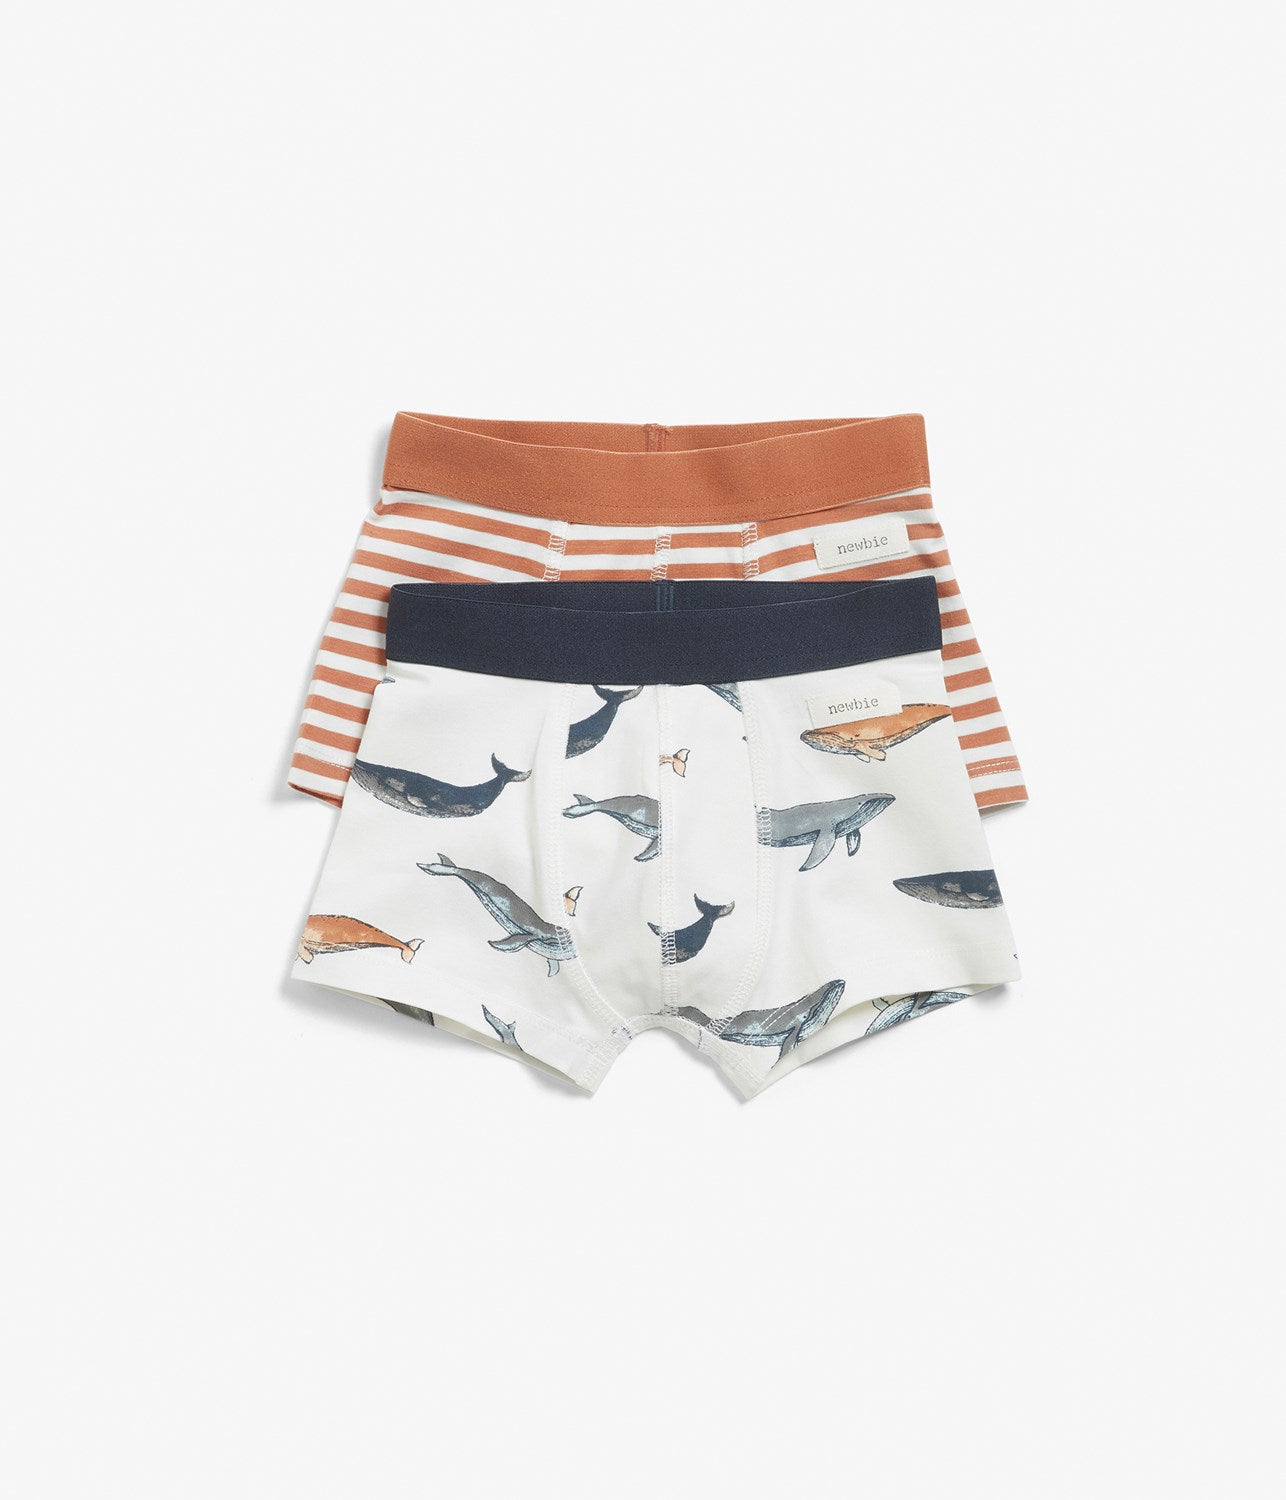 Kids patterned underwear 2-pack